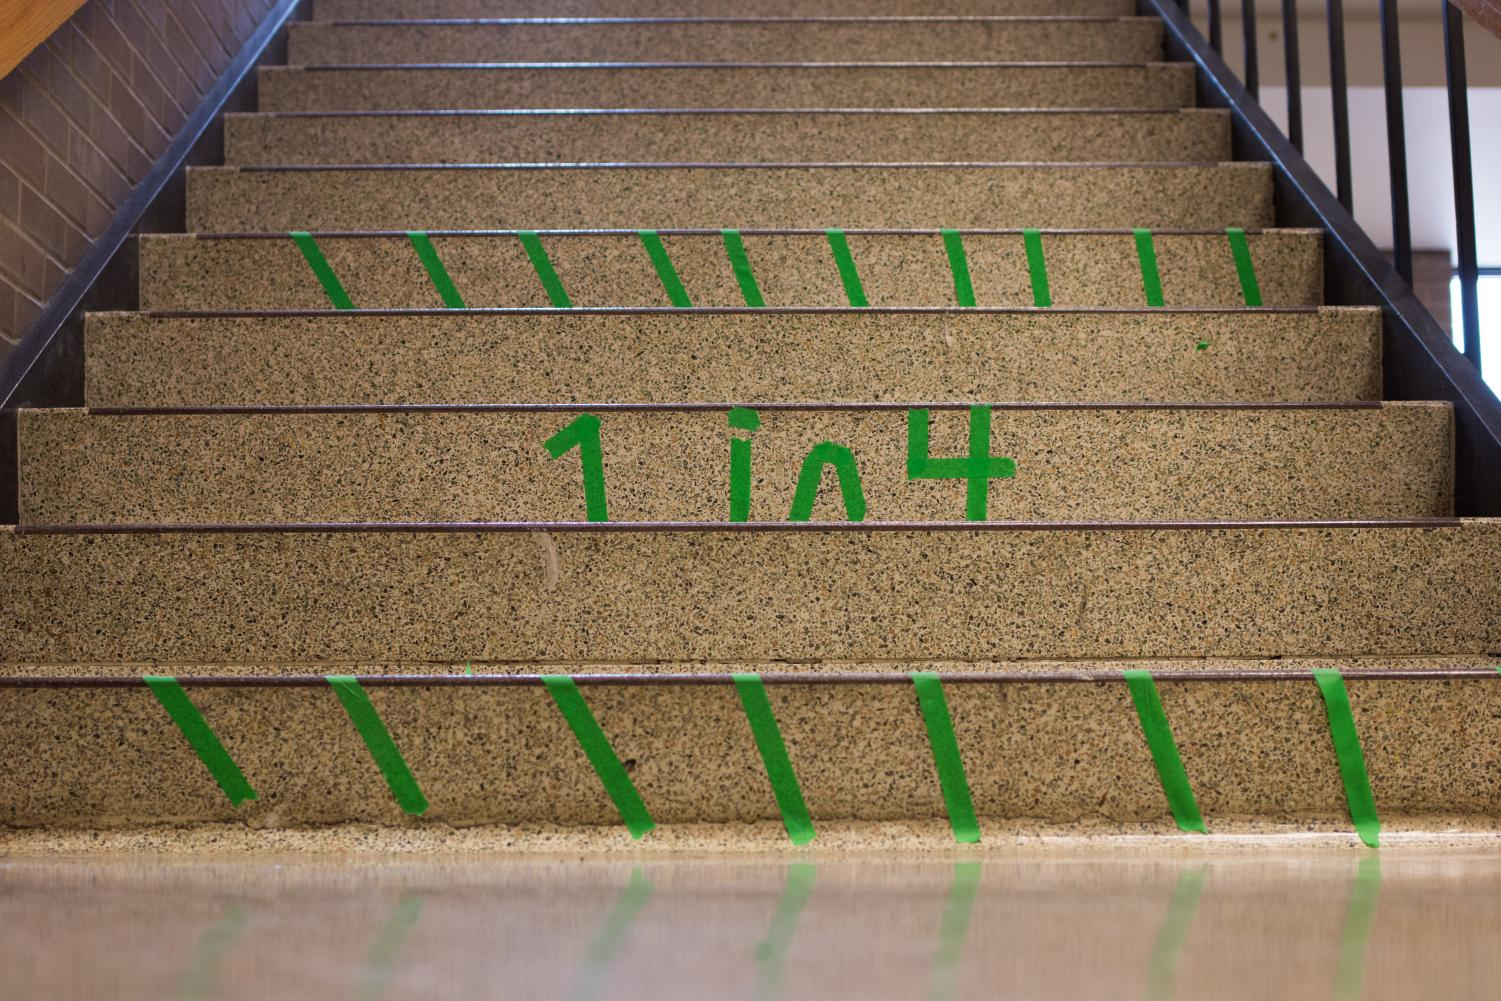 Every green stair that SADD displayed showed a person fighting, but it also showed a person we can  help, in a way big or small.